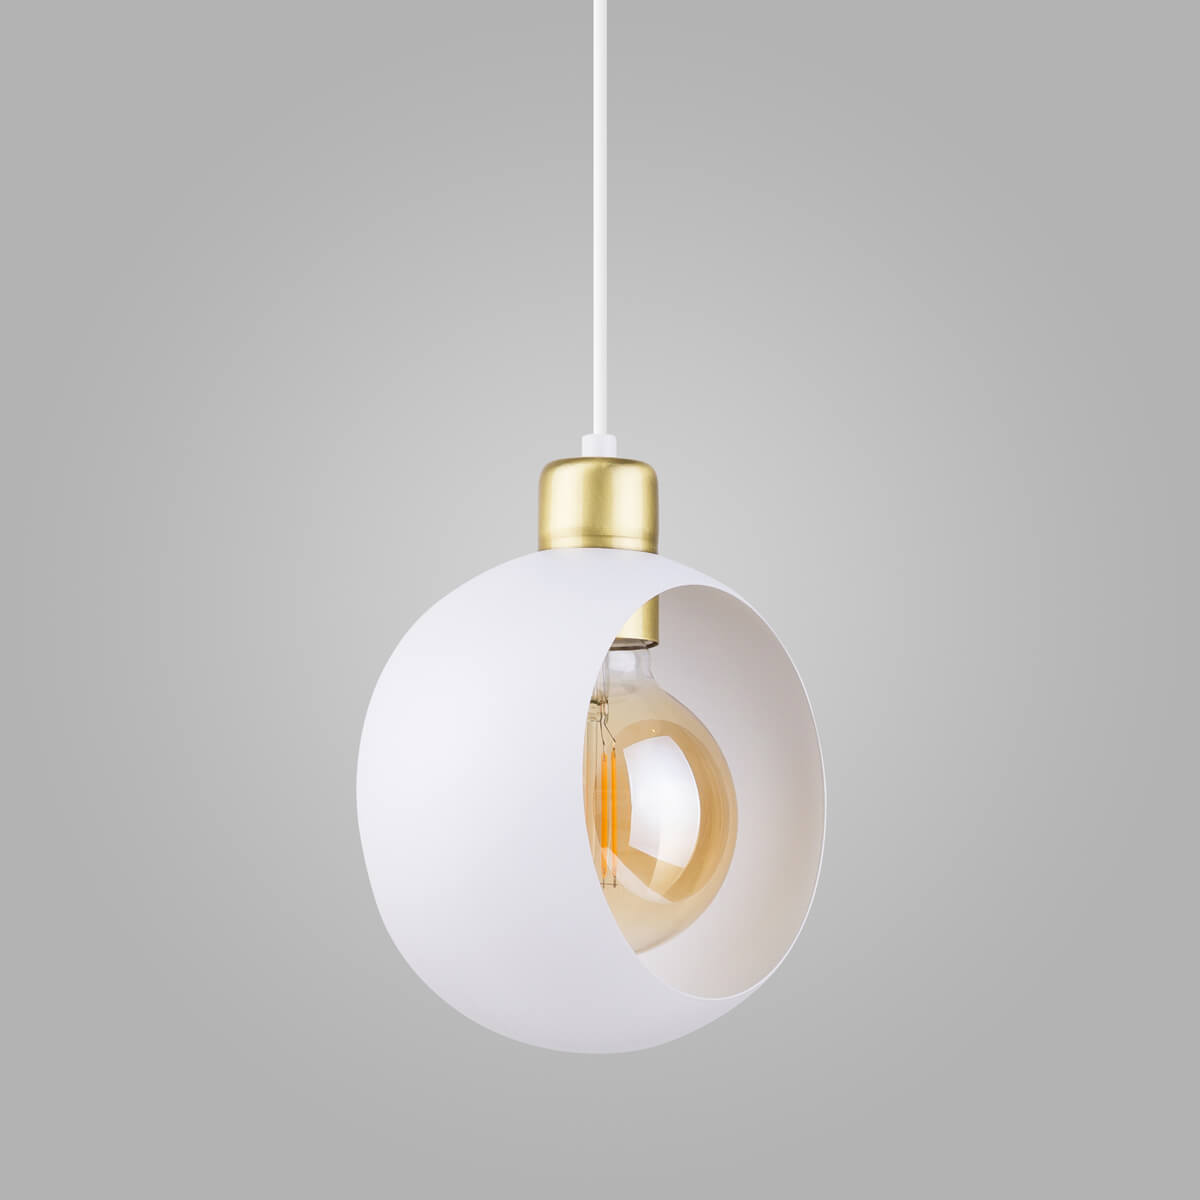 Светильник TK Lighting 2741 Cyklop Cyklop